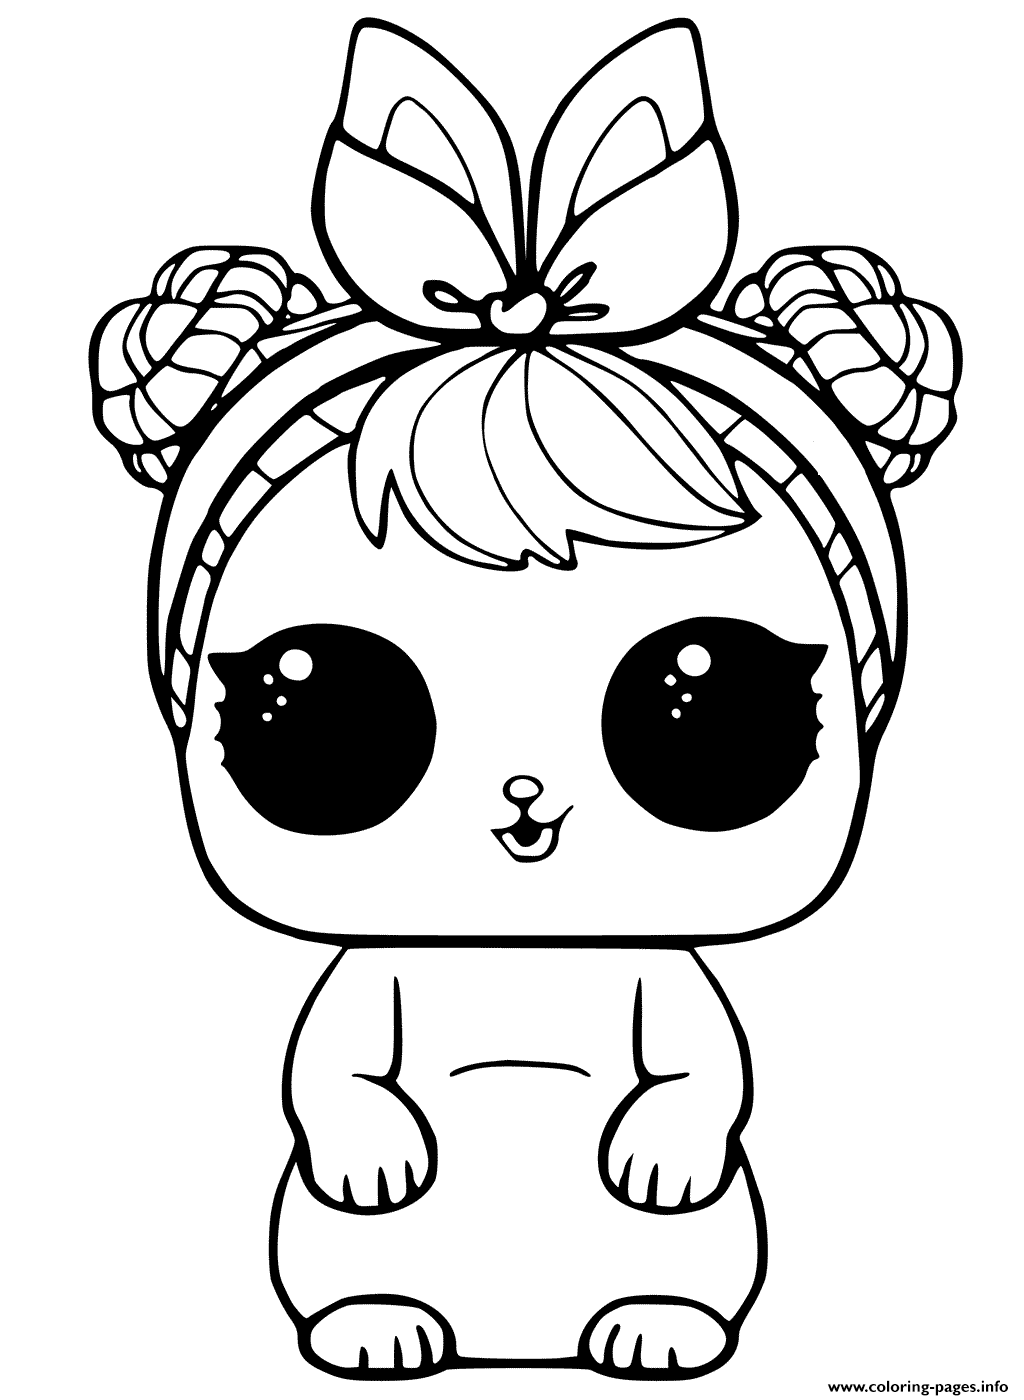 Print Lol Pets Coloring Pages Cartoon Coloring Pages Unicorn Coloring Pages Coloring Pages